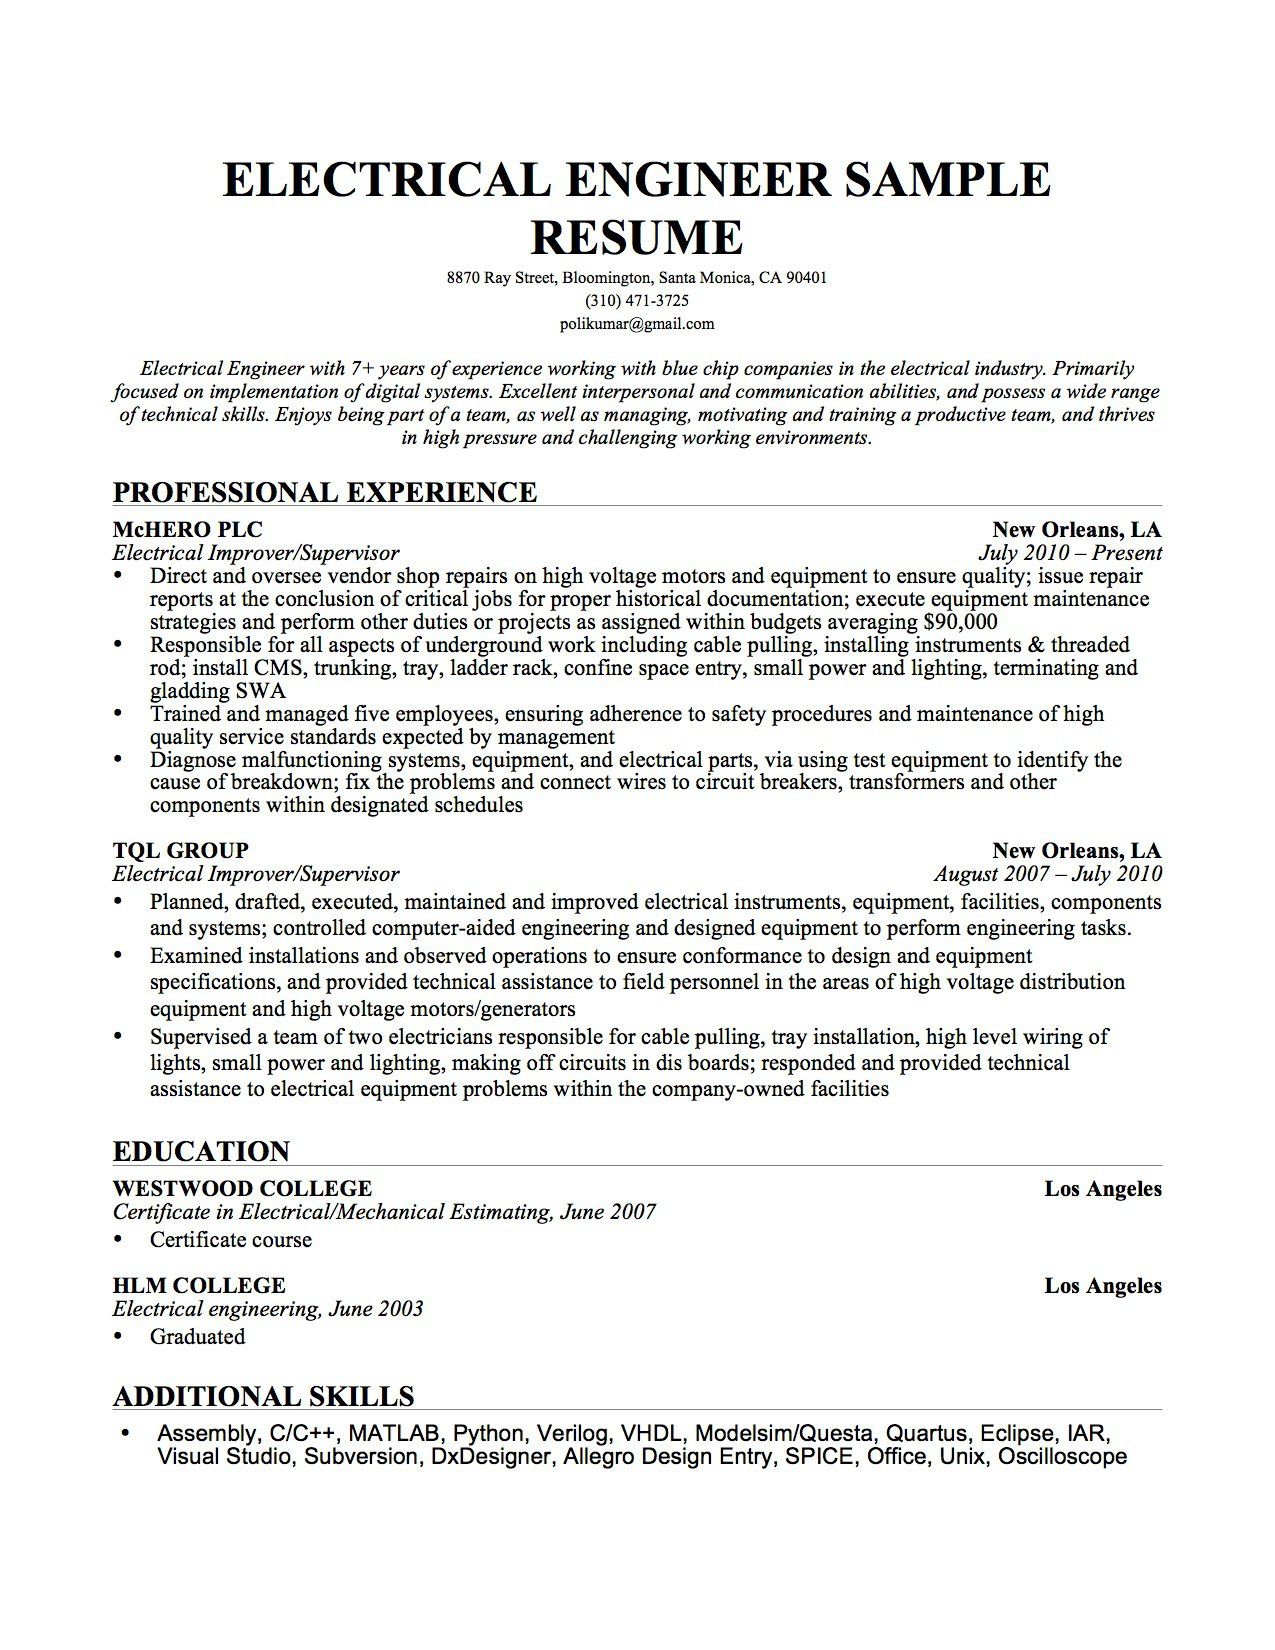 engineer sample resume equipment fixed biomedical technician cover letter vosvetenet